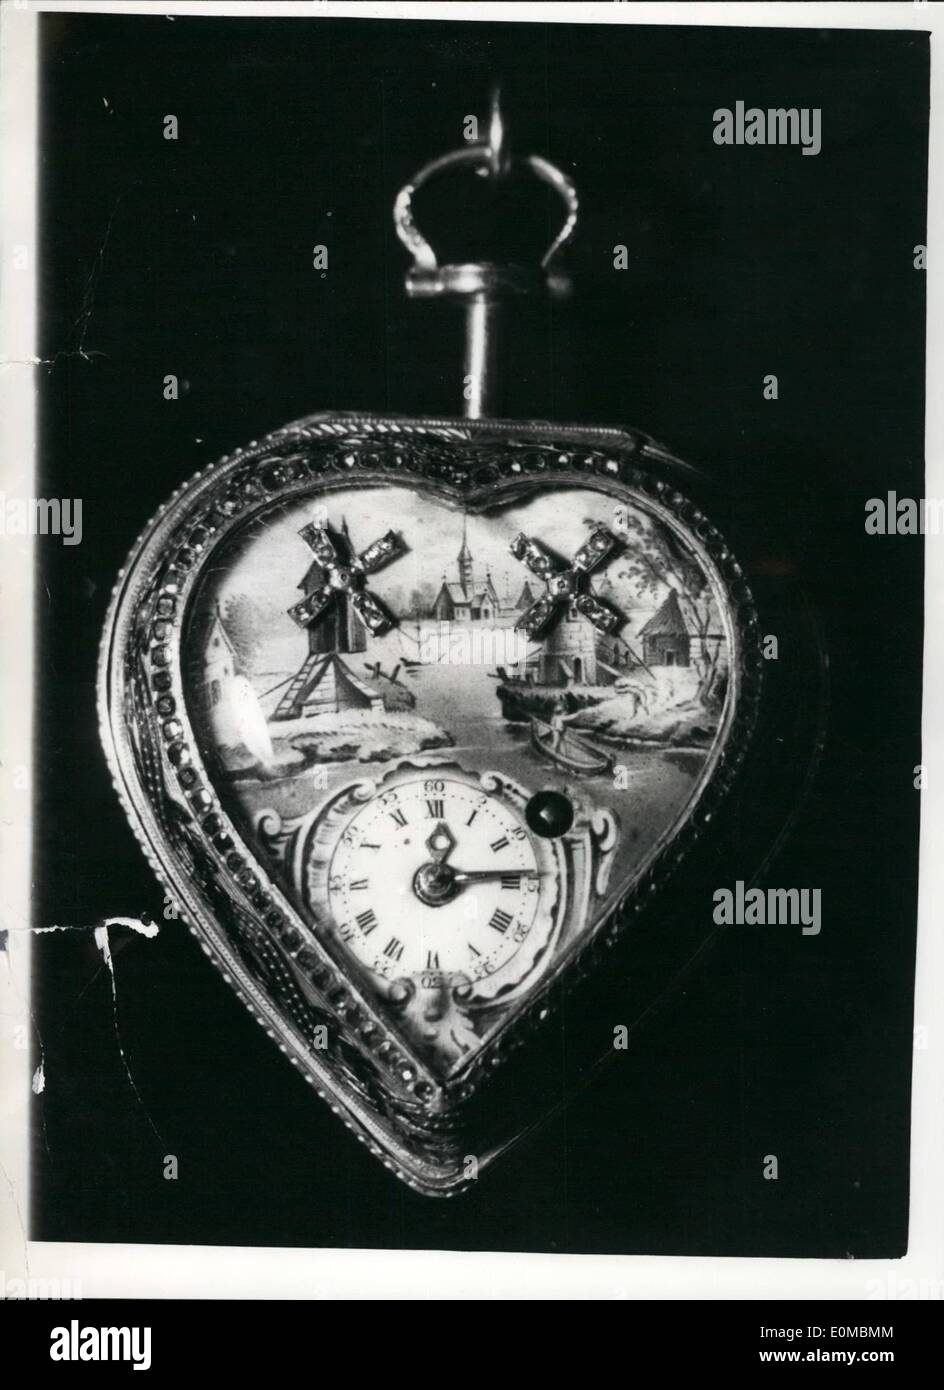 Jun. 06, 1954 - Antique dealers fair and exhibition at Grosvenor house. Photo shows an 18th century lovely automata watch which - Stock Image